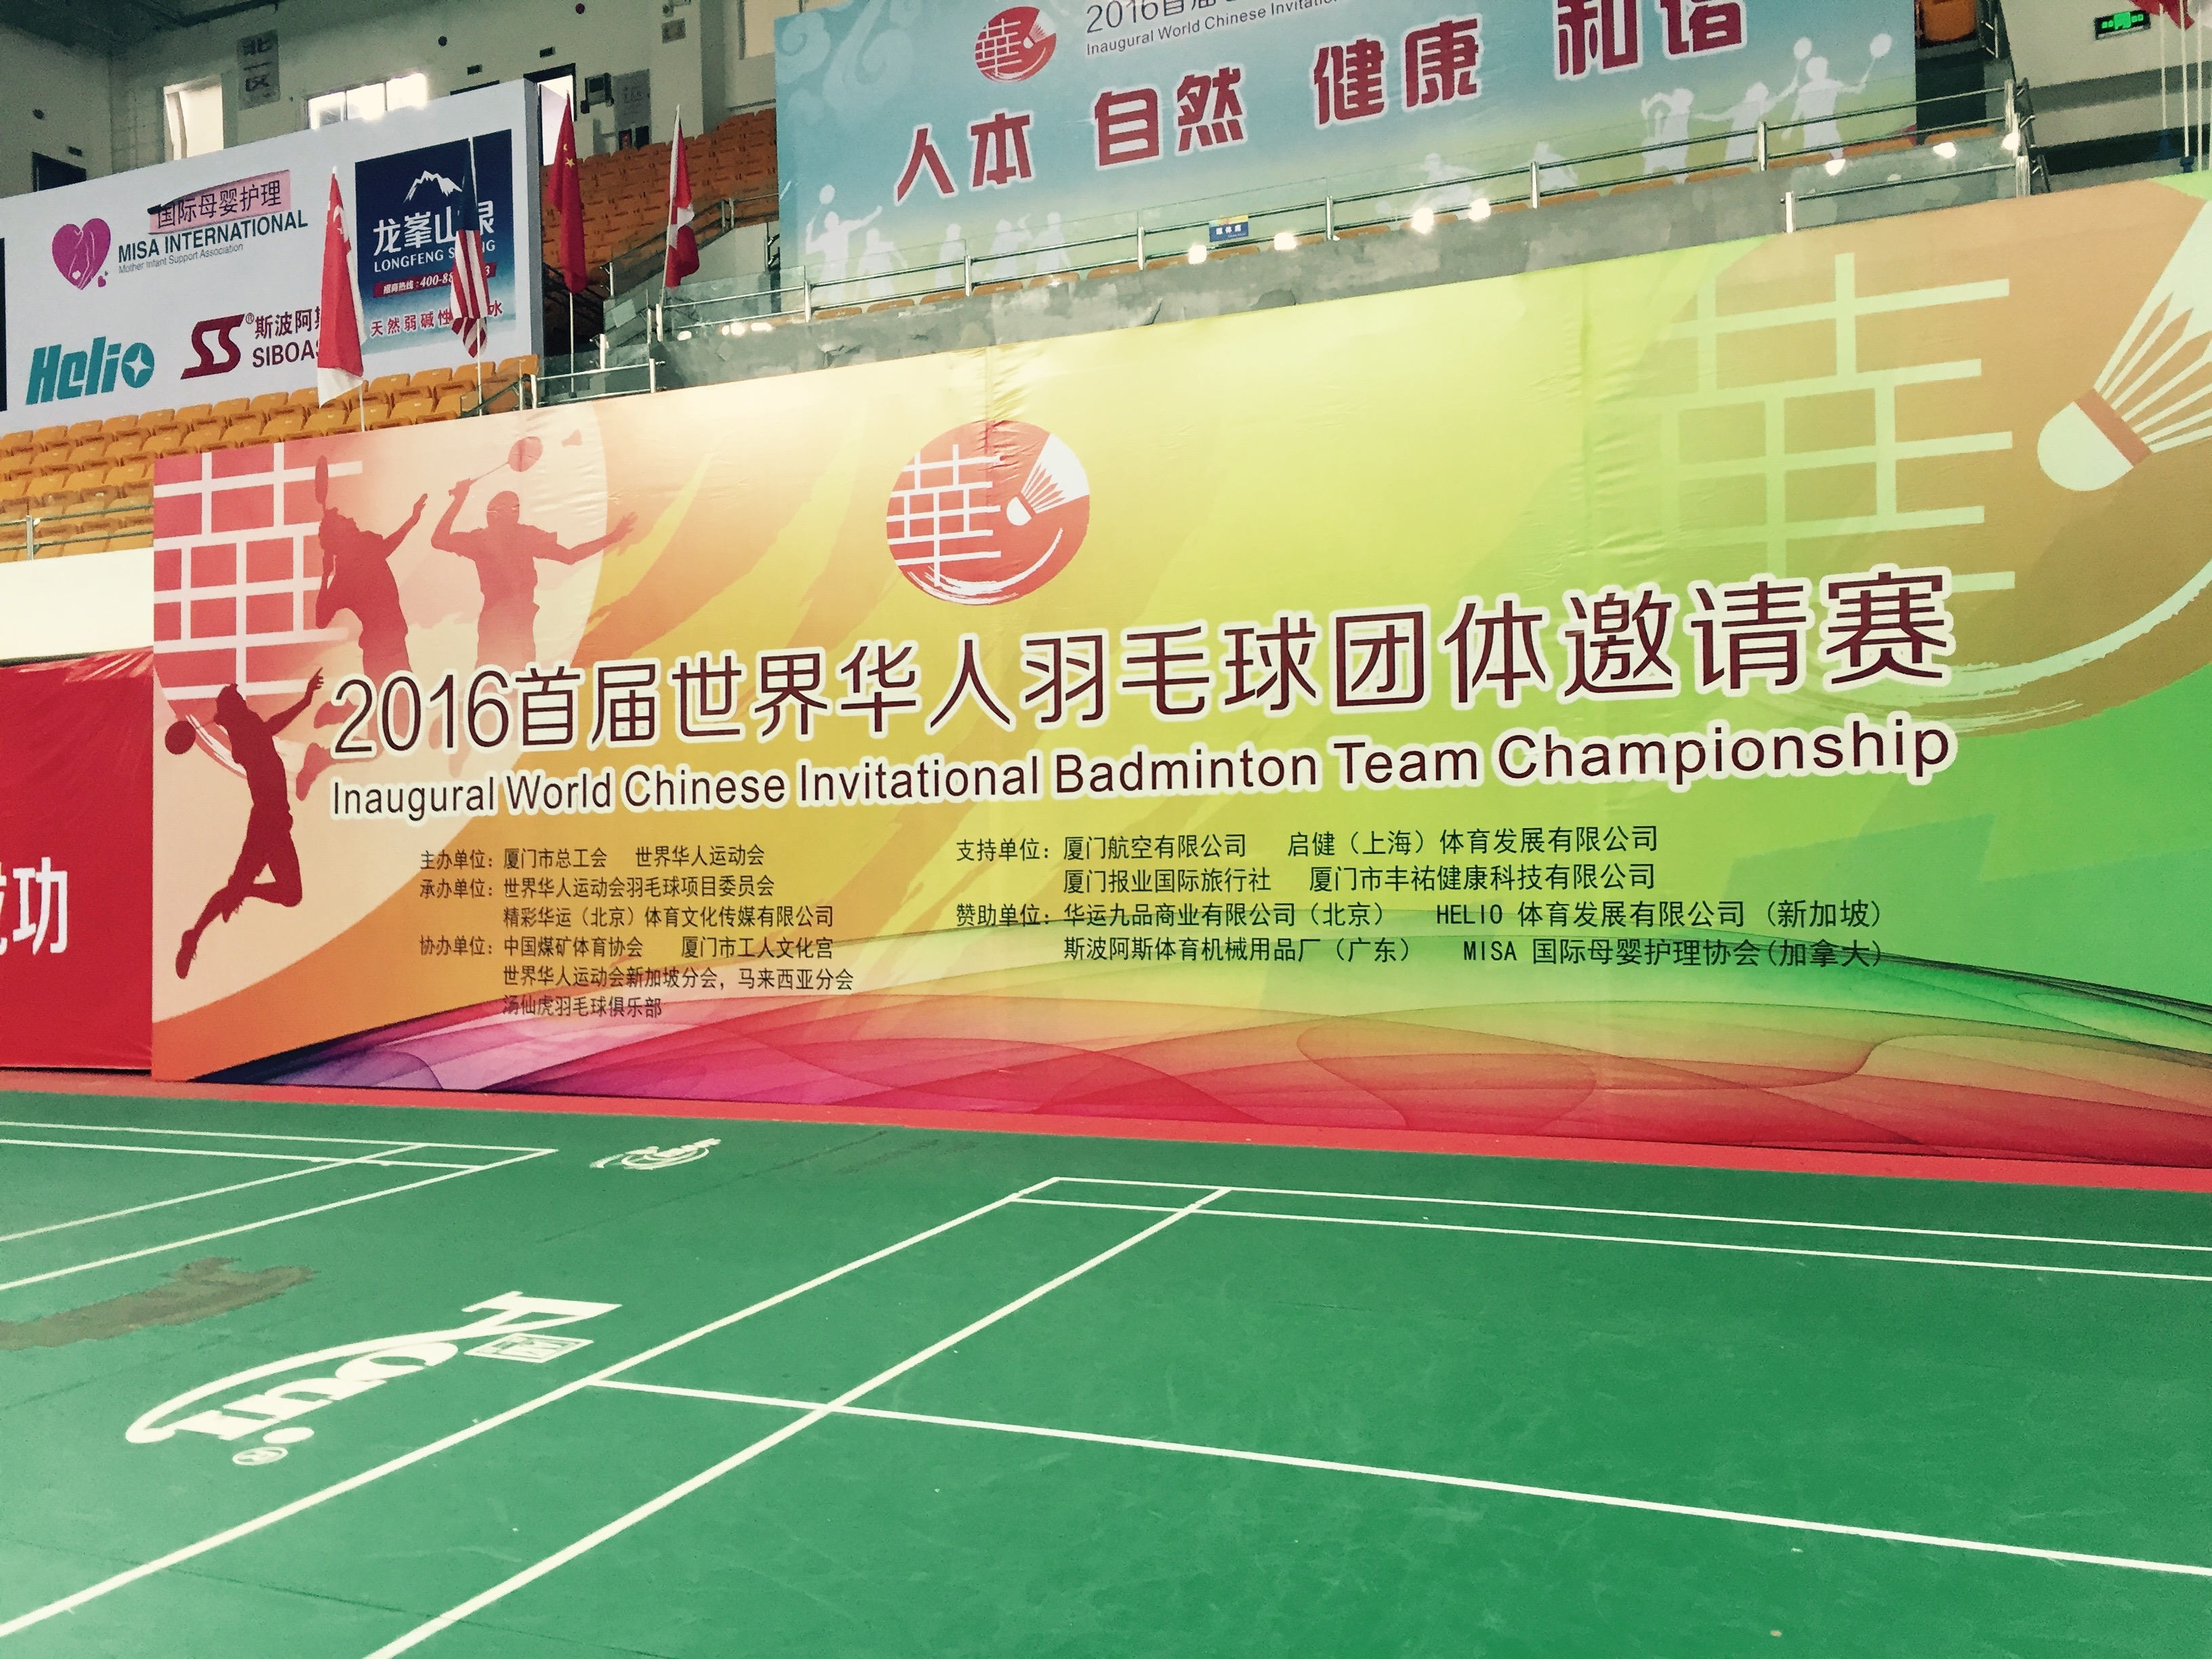 The name of this local Xiamen tournament is